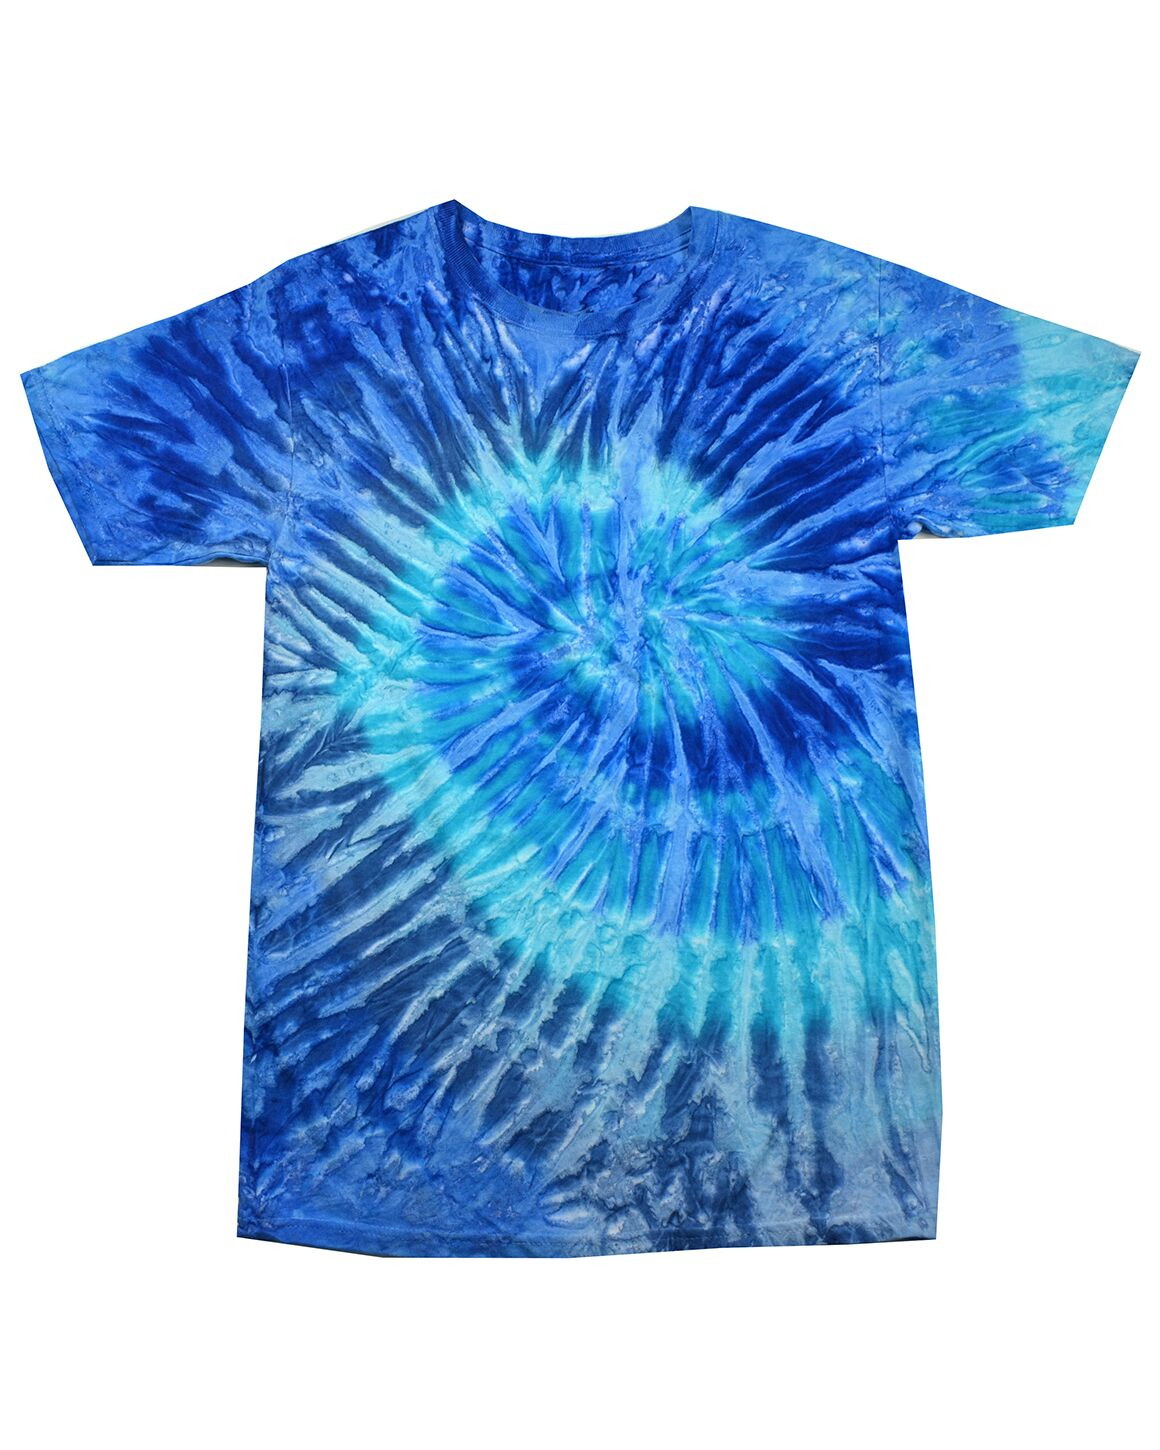 Promotional Product Tie Dye - Blue Jerry